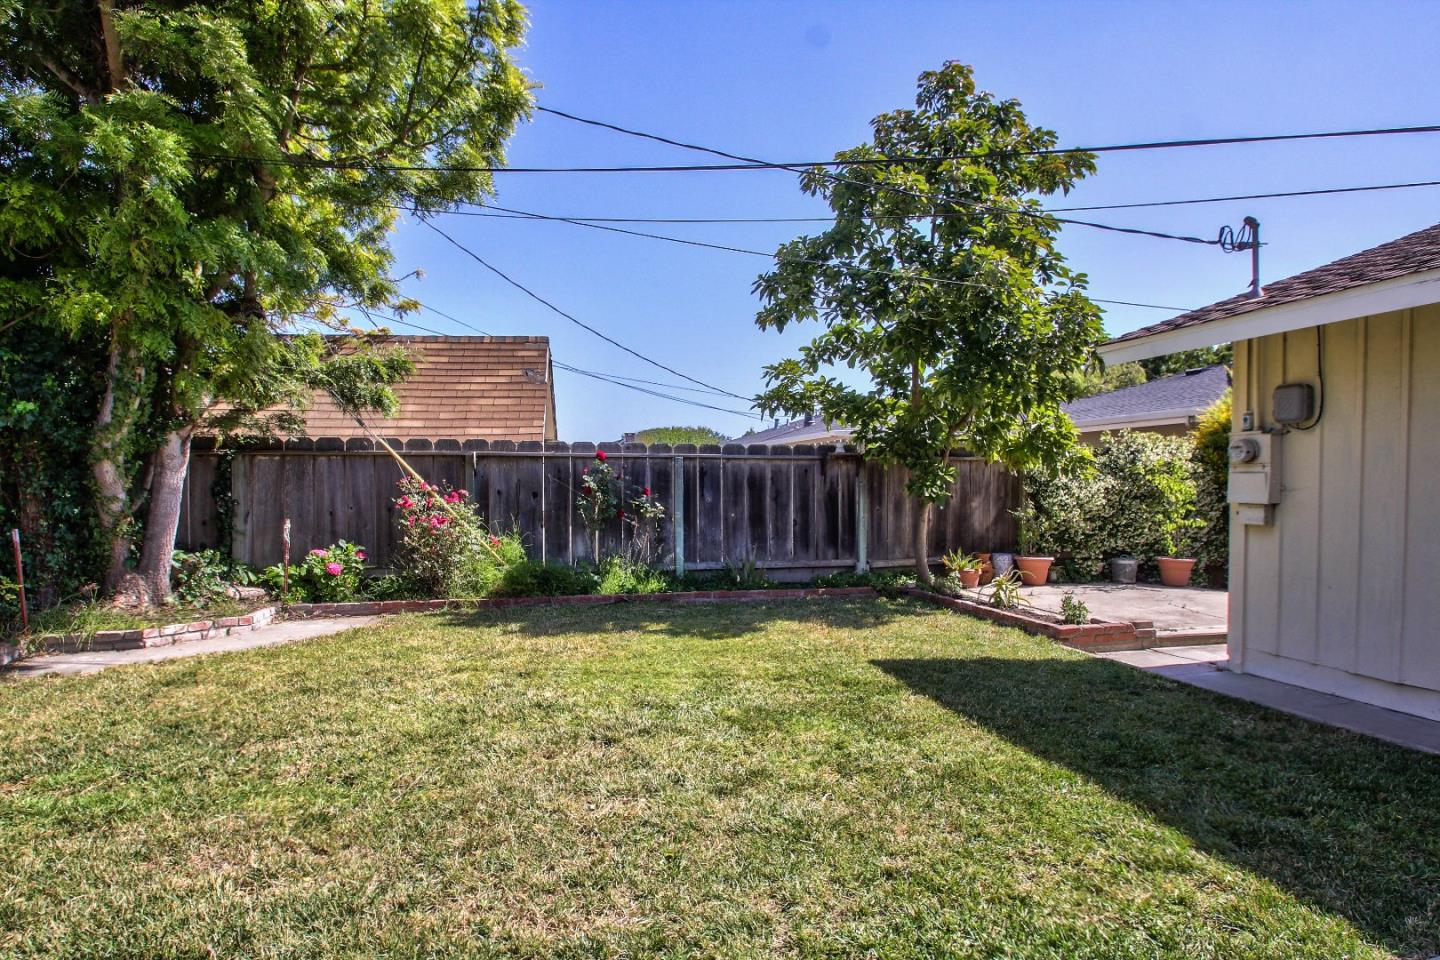 Additional photo for property listing at 1334 Riker Street  Salinas, カリフォルニア 93901 アメリカ合衆国